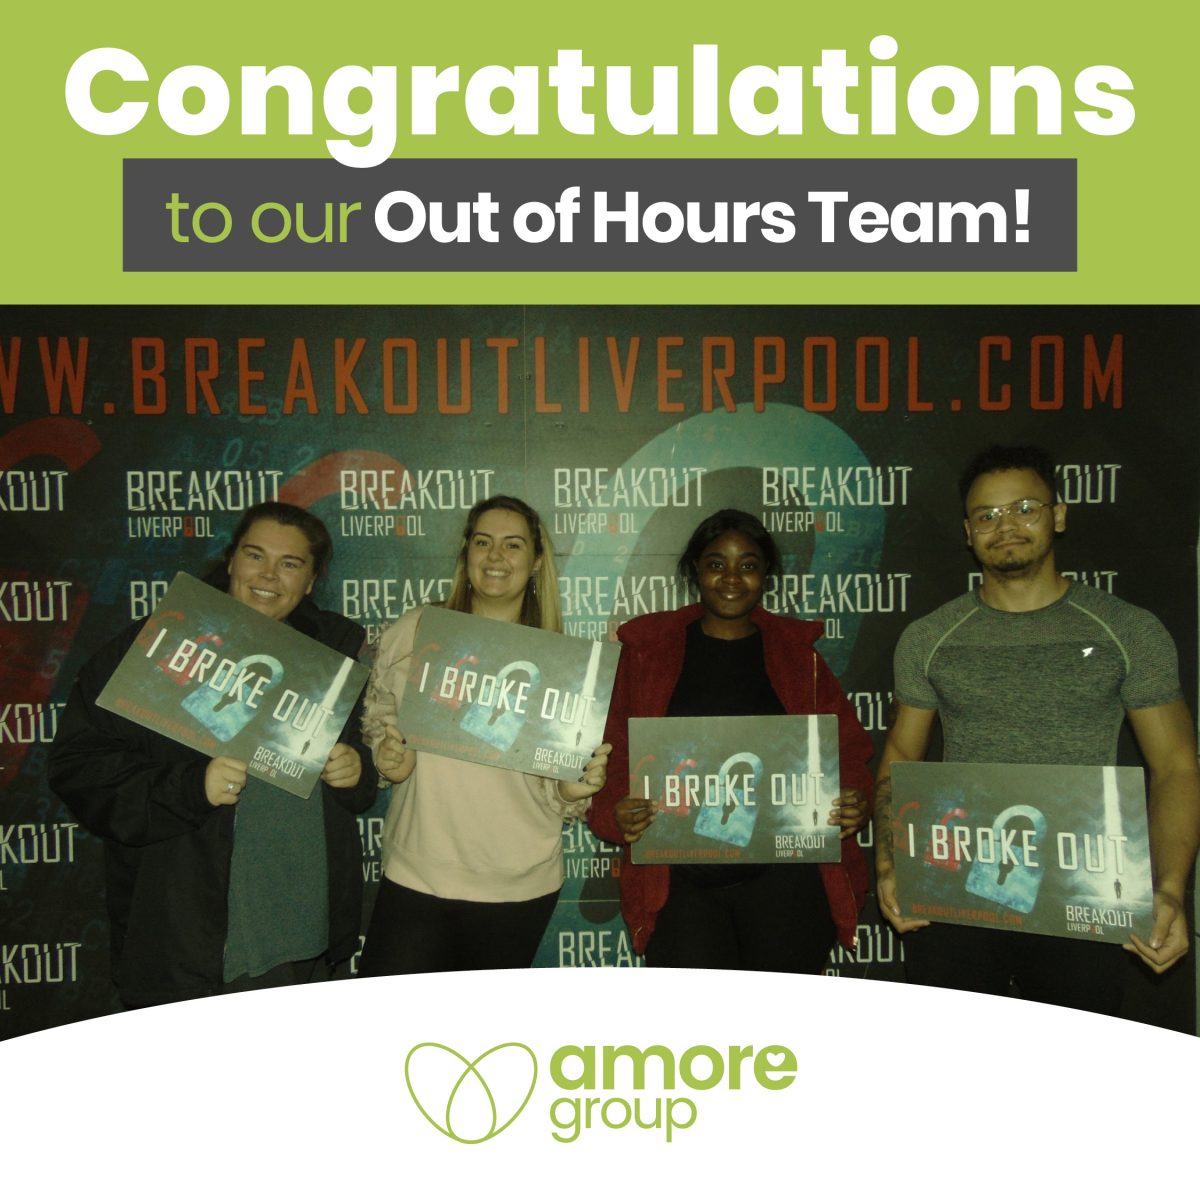 Our strong team made their escape!